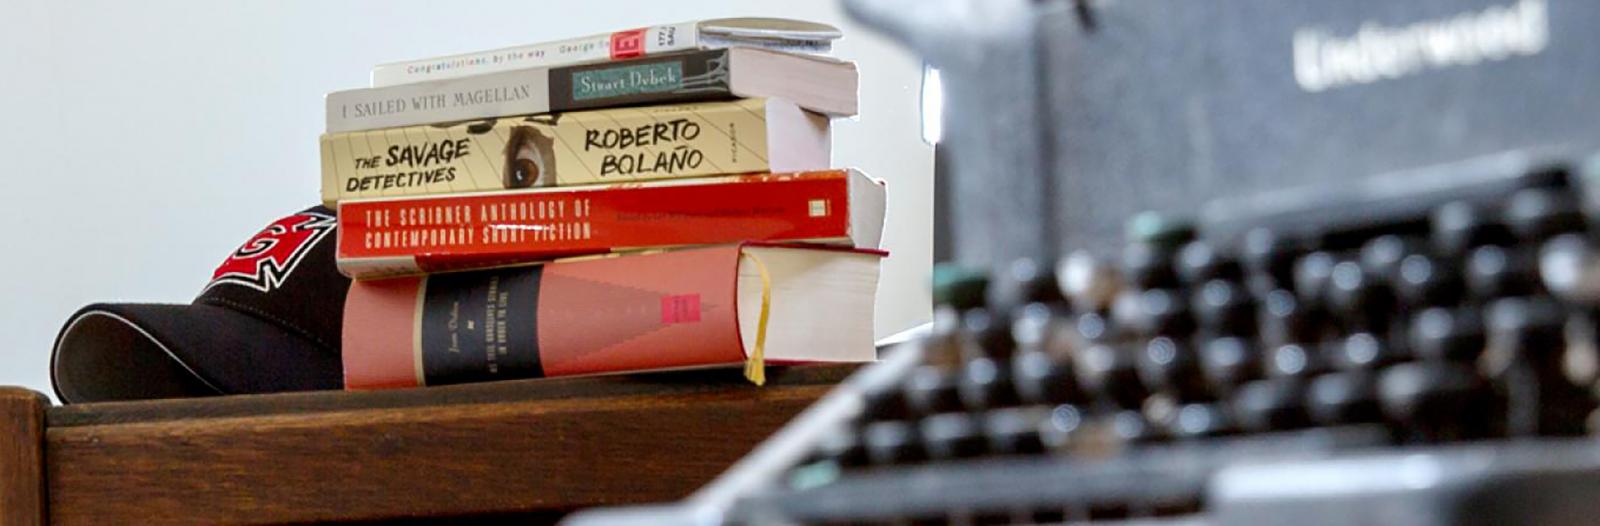 books on a table beside a typewriter